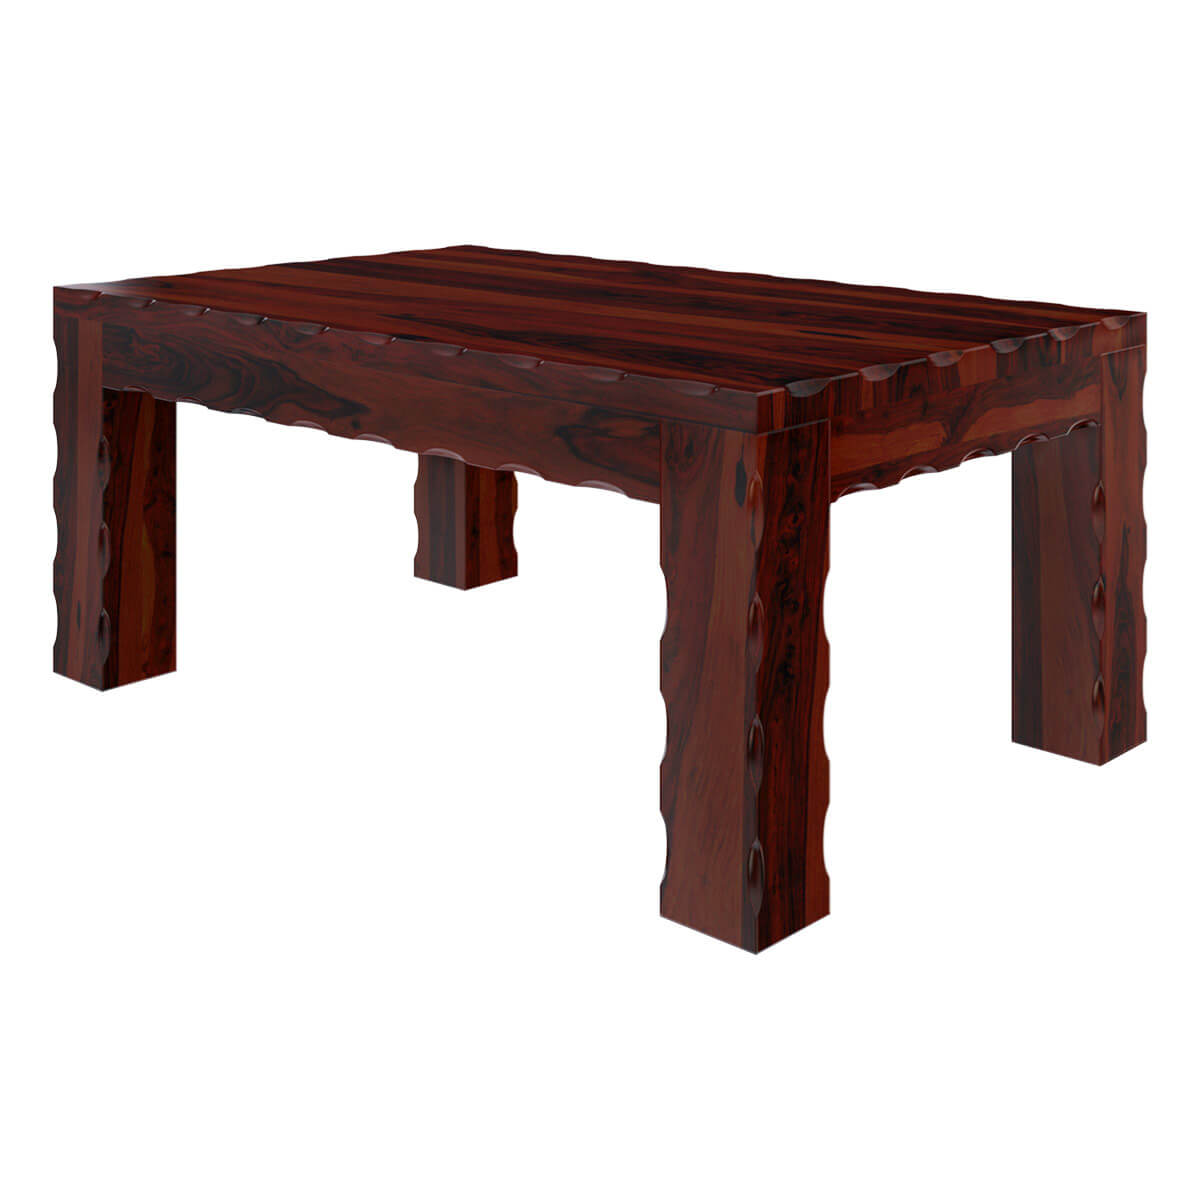 Unique rustic large cocktail wood coffee table for Rustic coffee table